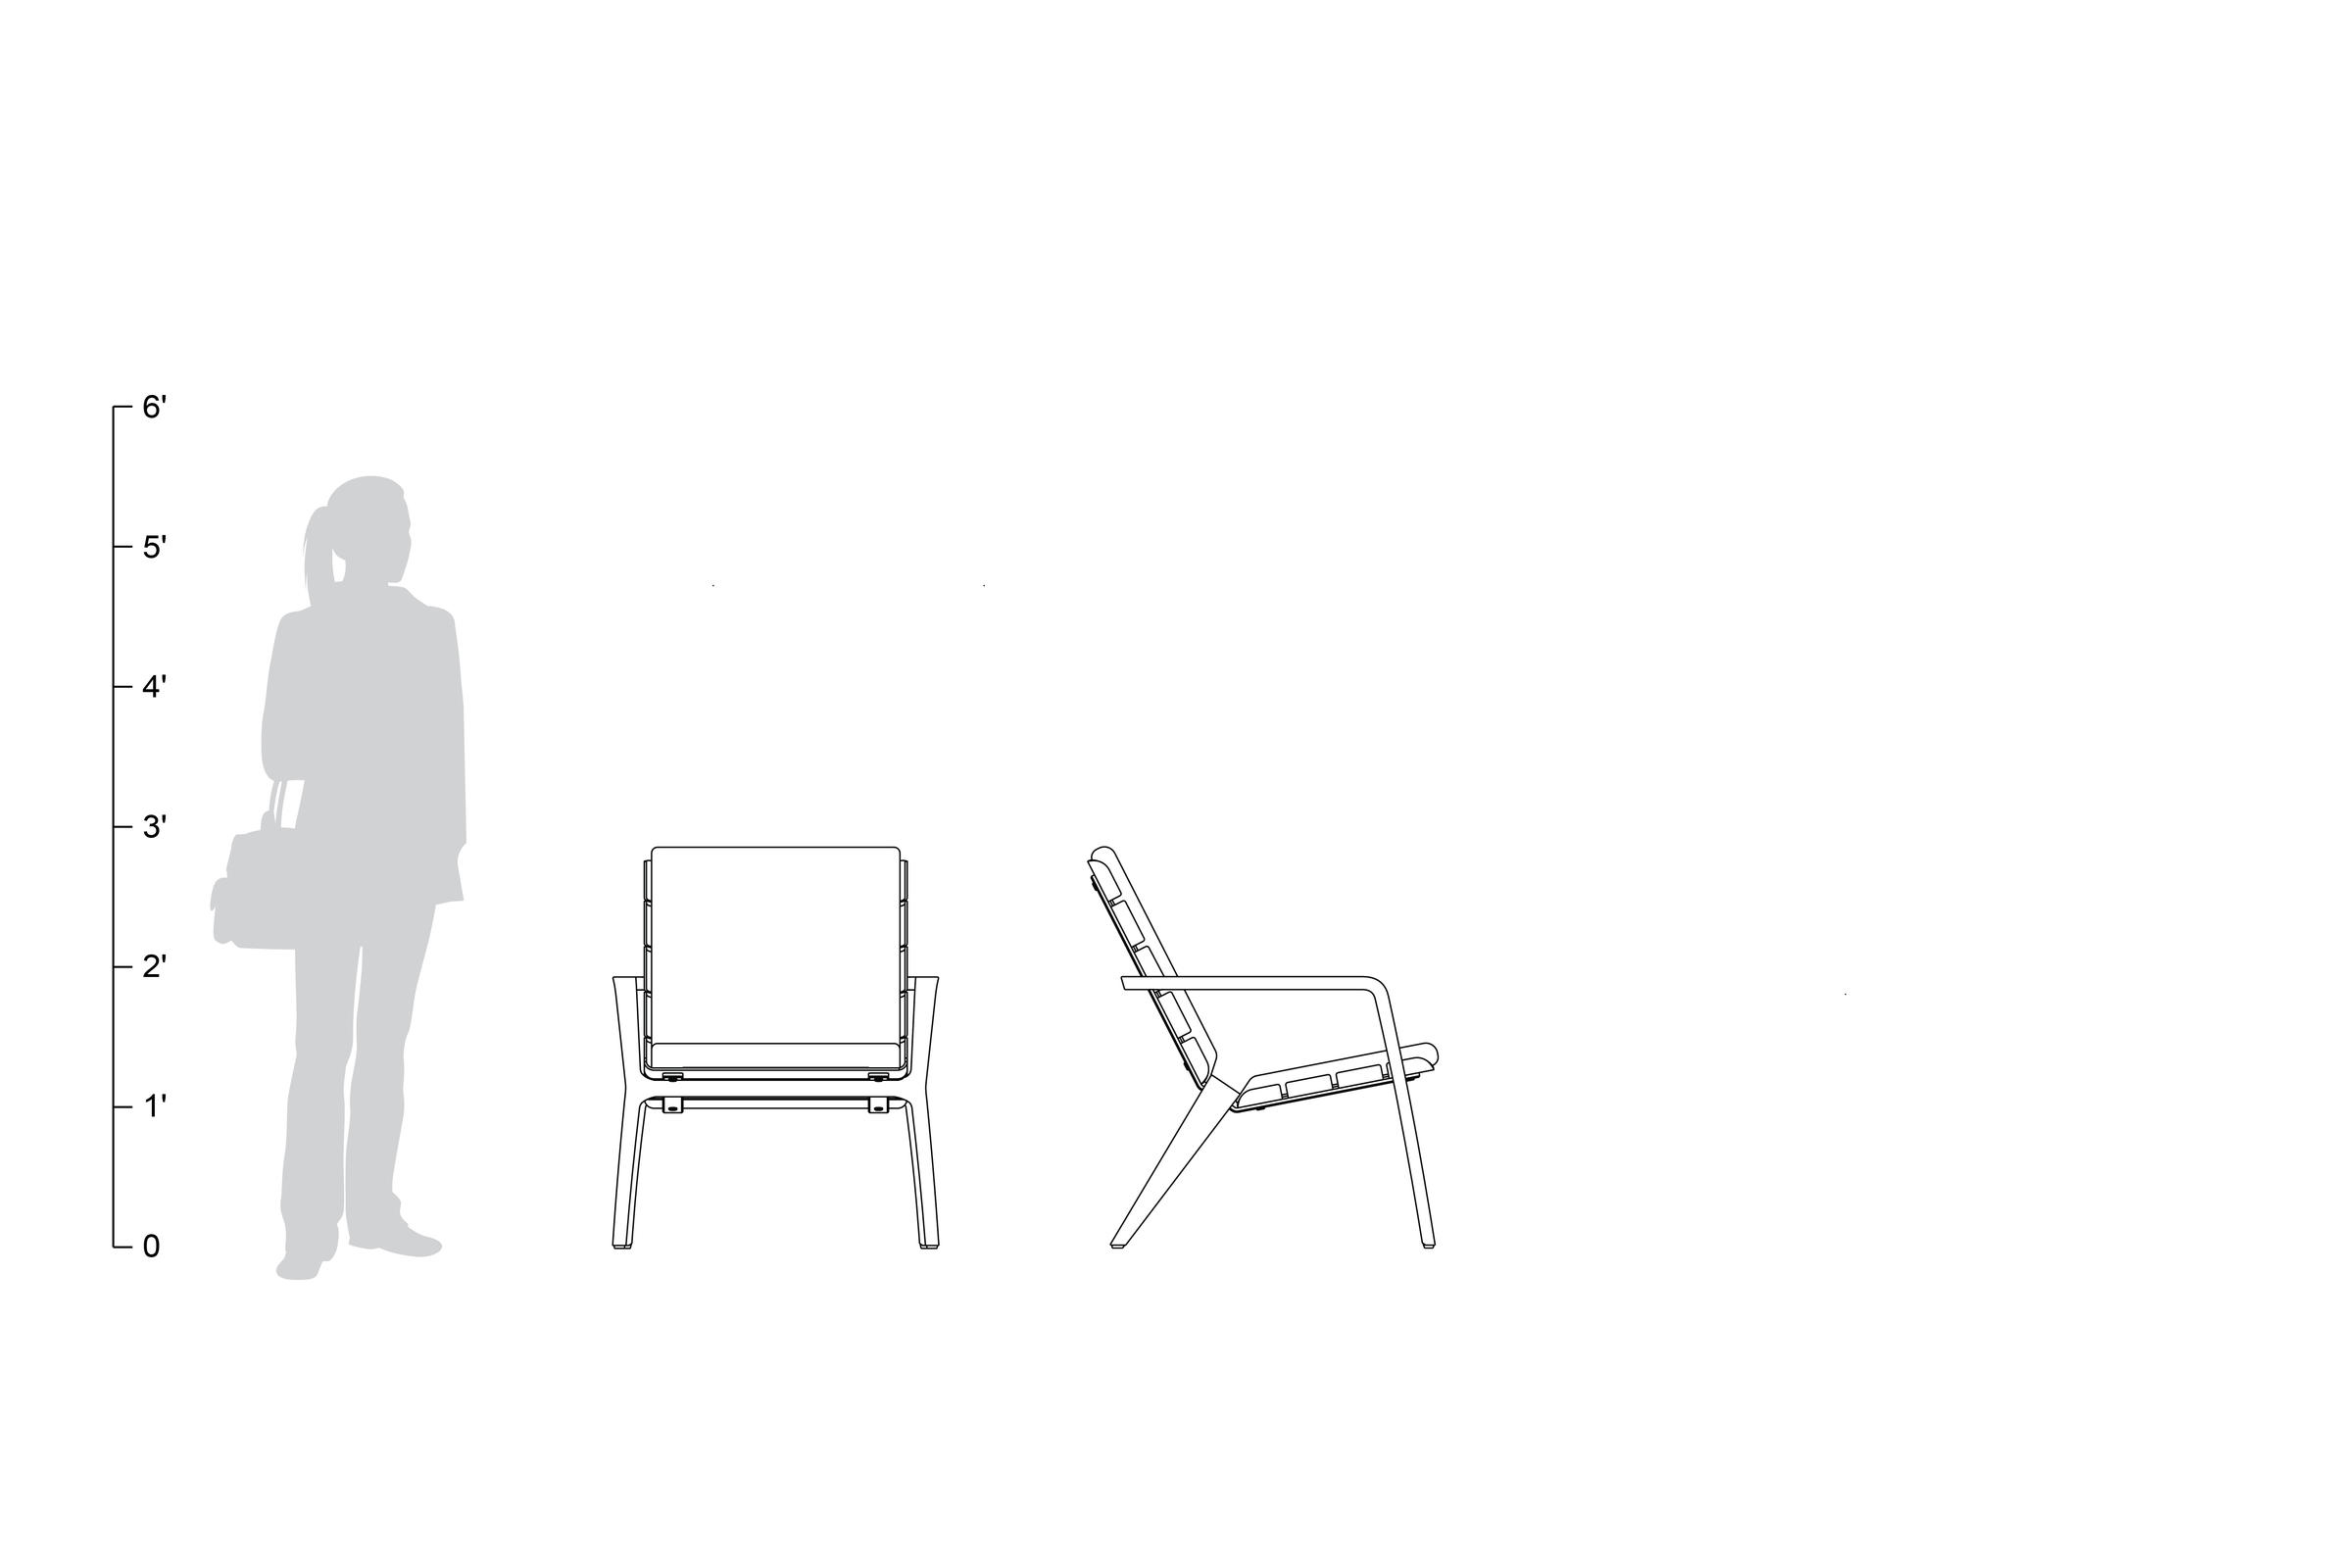 Vaya Textile Chair, shown to scale